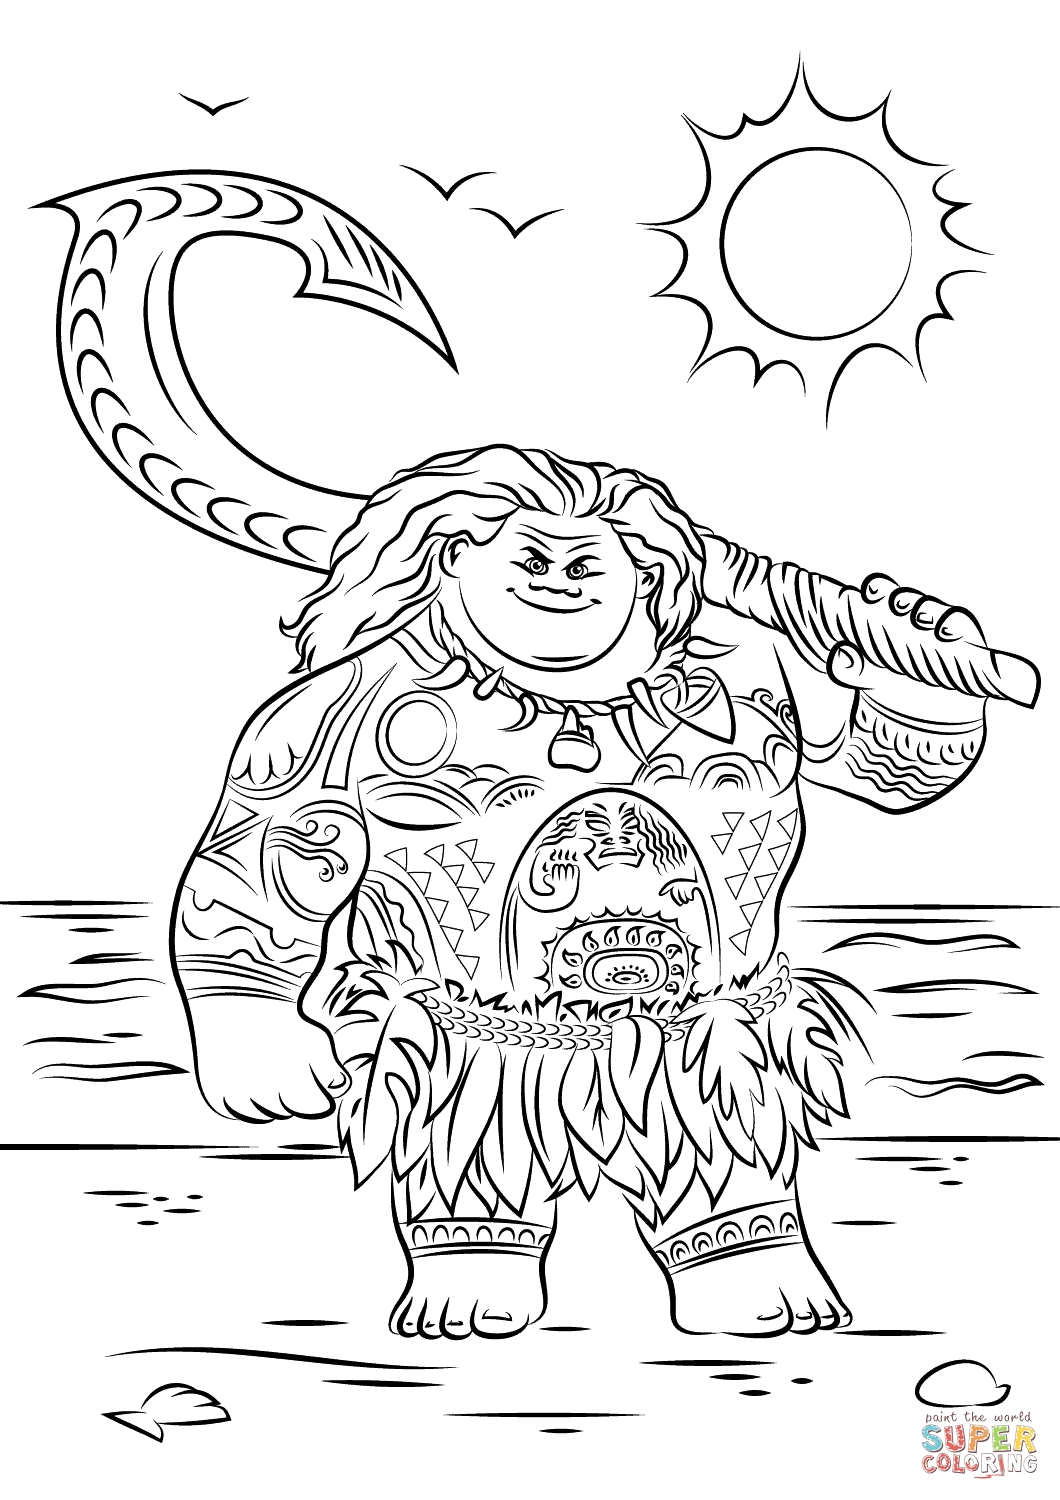 Maui Coloring Pages - Maui From Moana Coloring Page